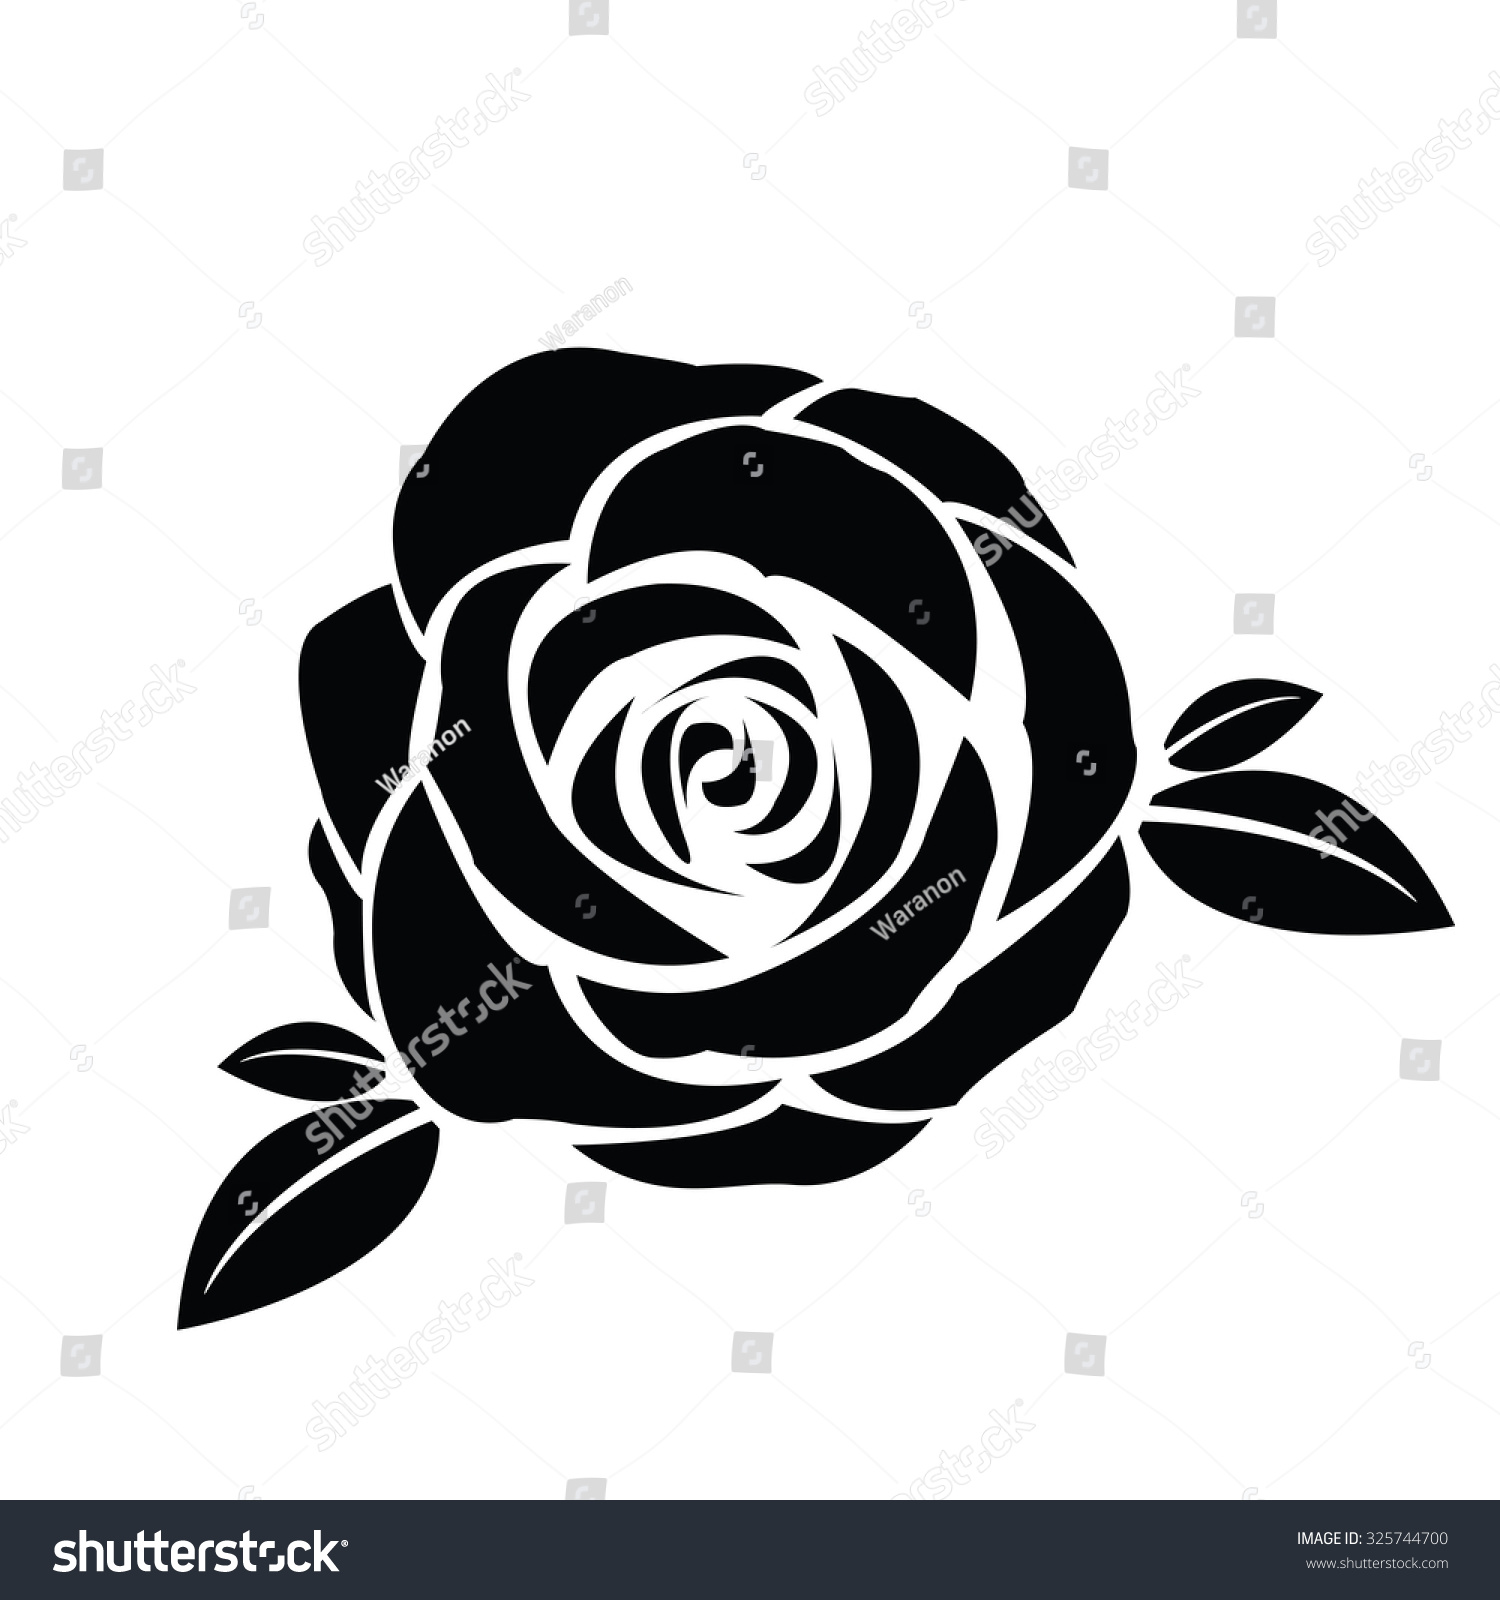 Related Keywords & Suggestions for rose vector